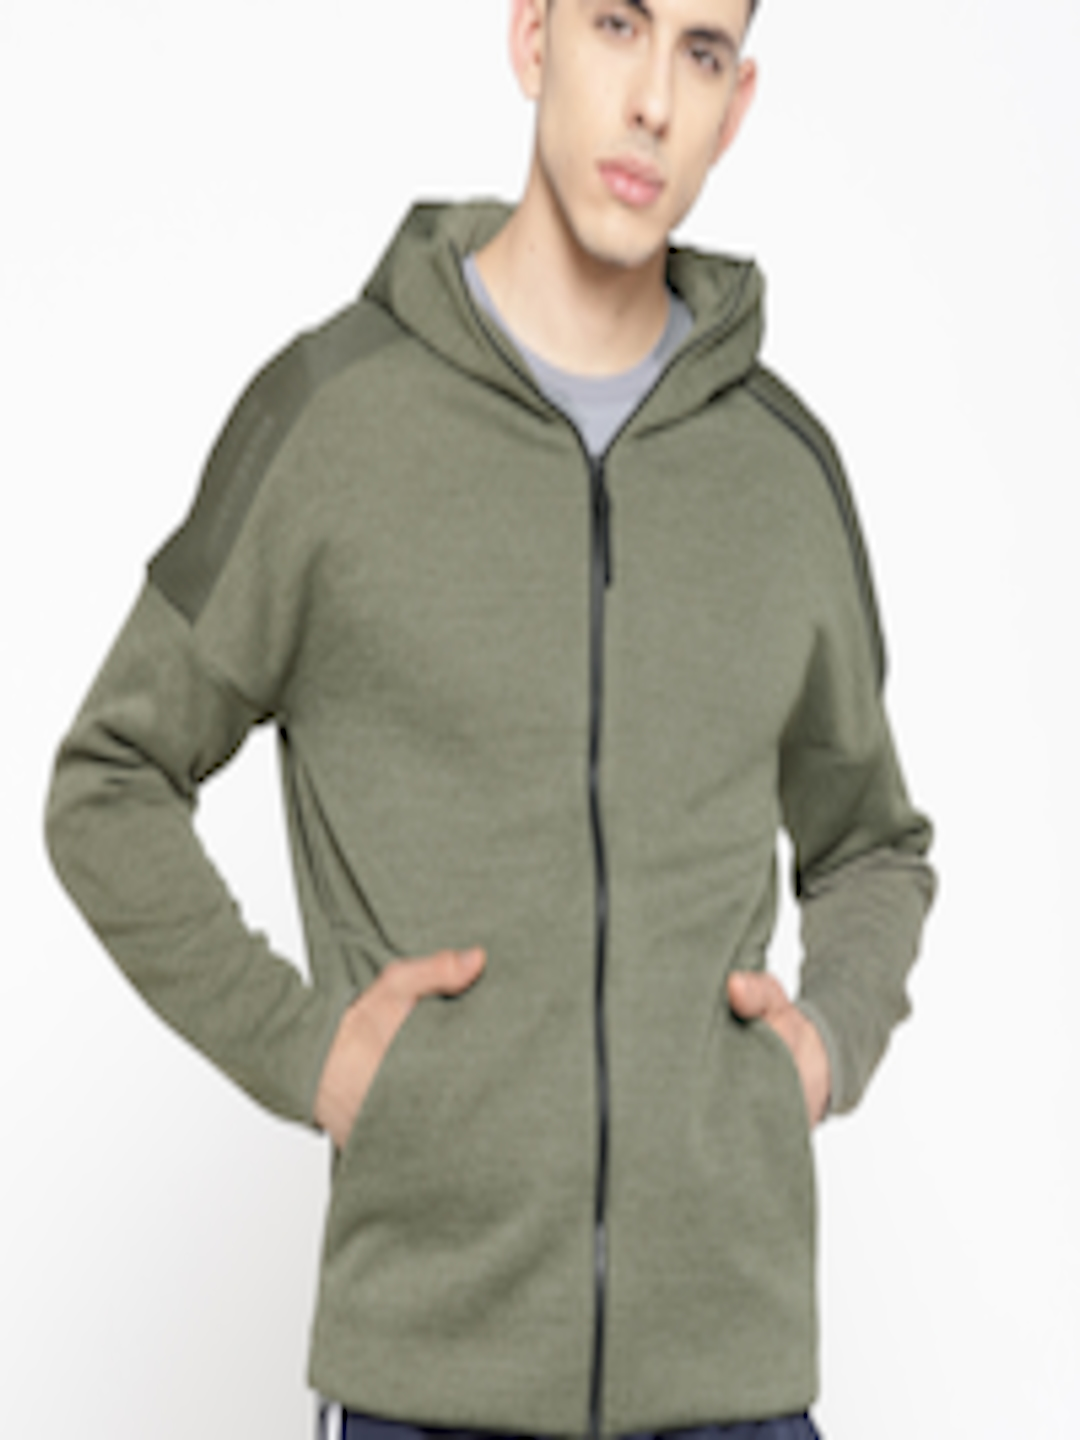 Men Olive Green Z.N.E. Fast Release Mesh Hooded Sporty Jacket  by Adidas